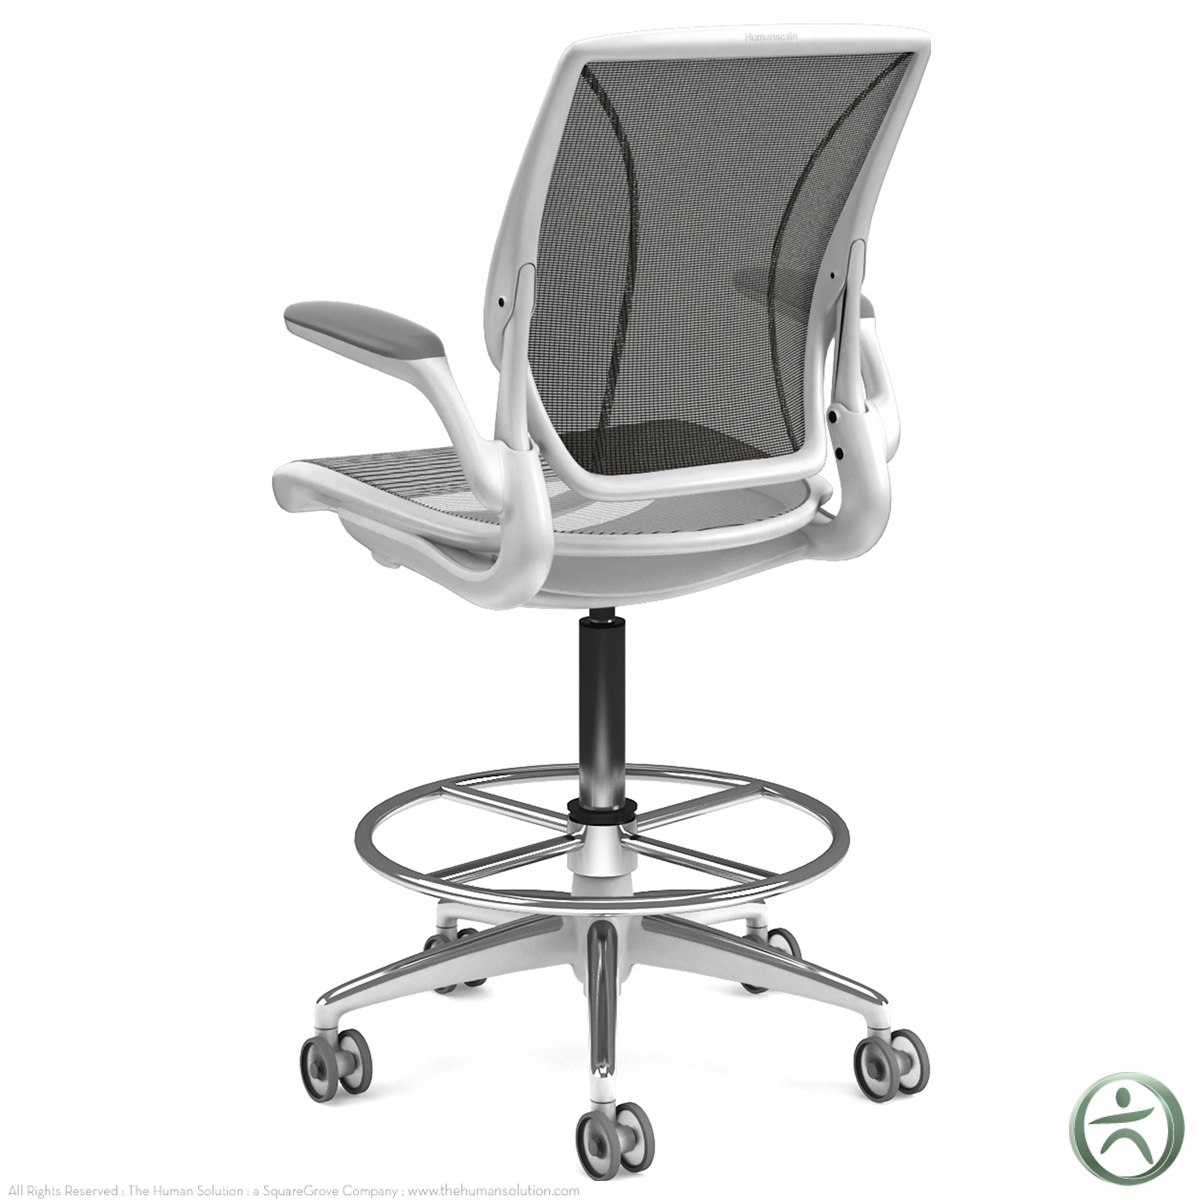 humanscale diffrient world chair white microfiber reclining and ottoman ergonomic office with lumbar support